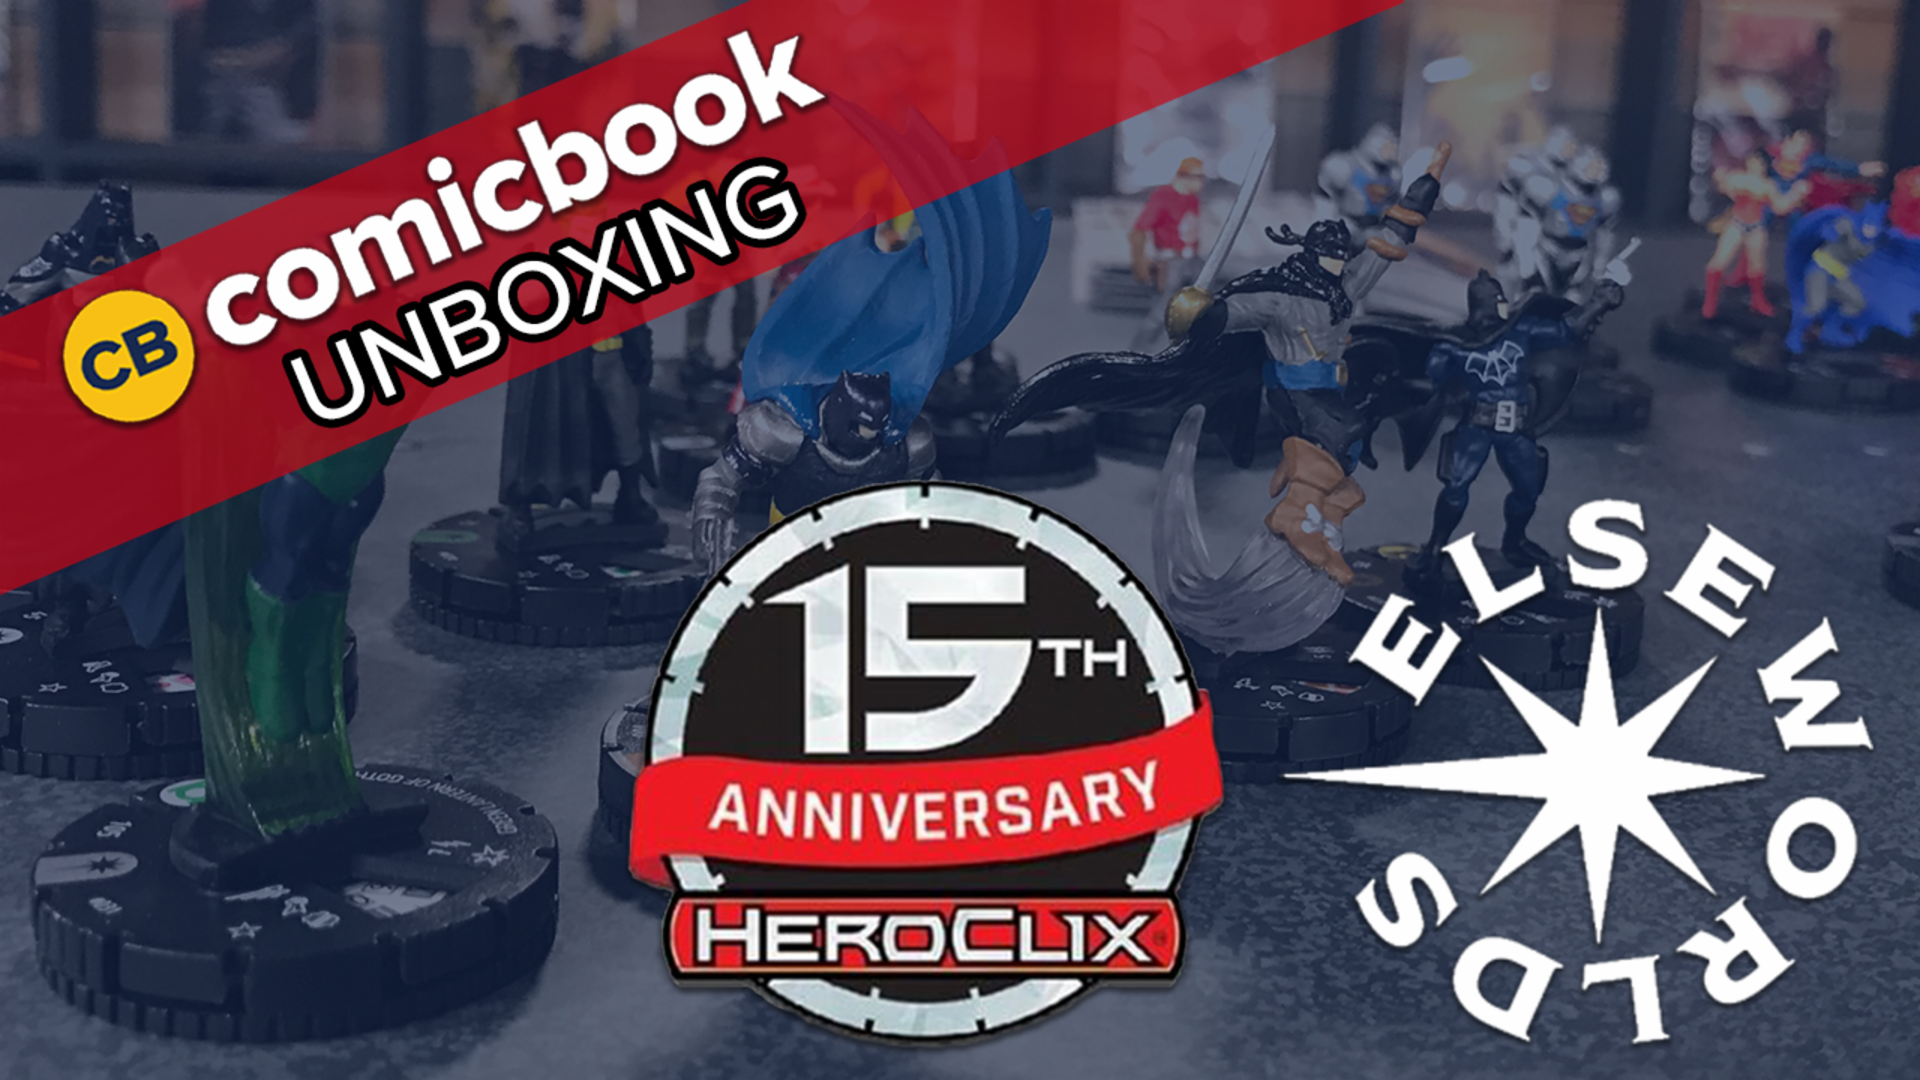 DC Comics HeroClix 15th Anniversary Elseworlds - ComicBook Unboxing screen capture